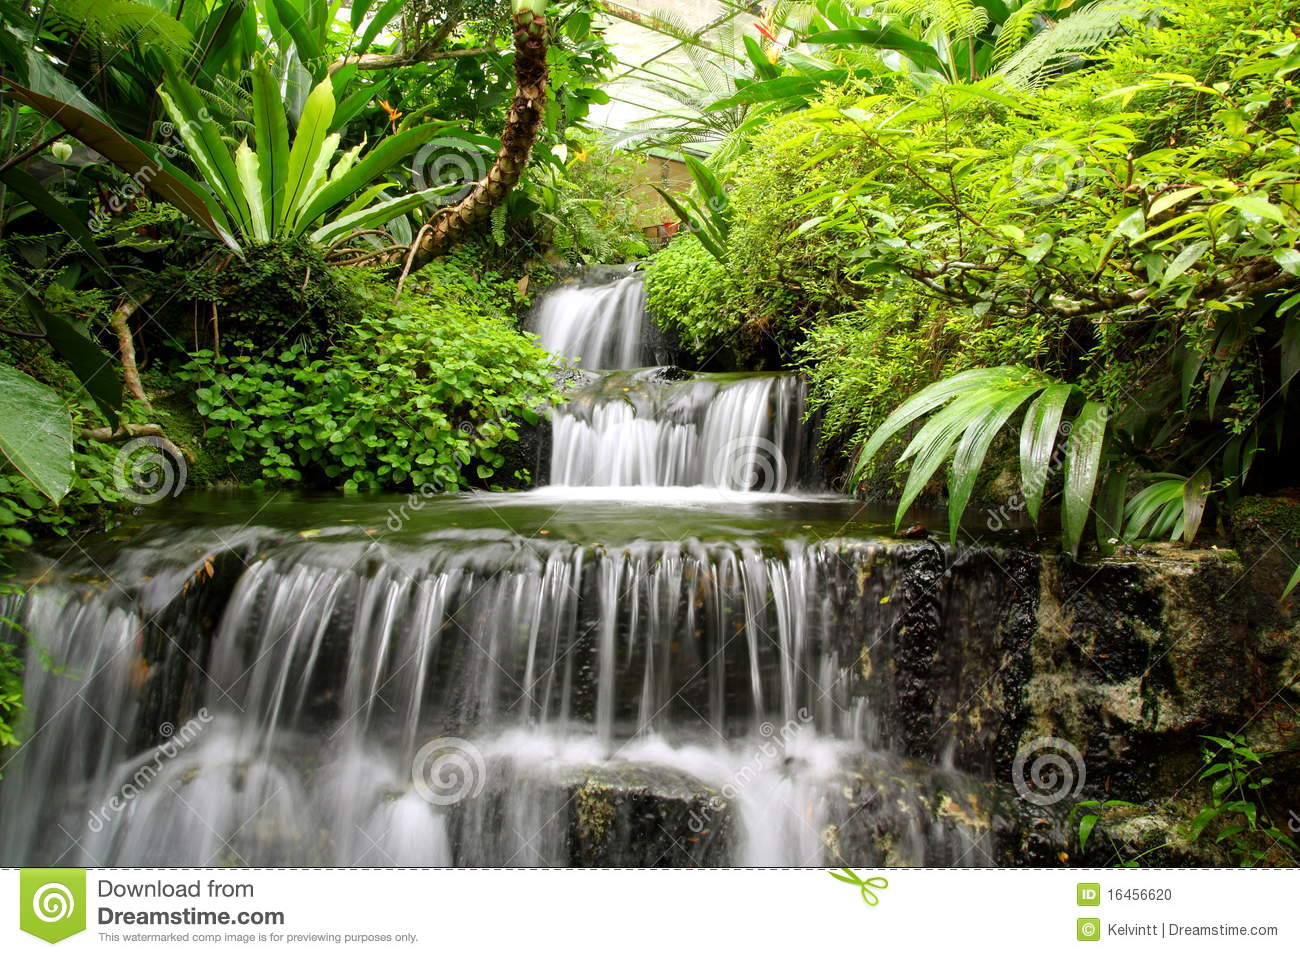 Download Waterfall In The Rain Forest Stock Photo - Image of fall, element: 16456620